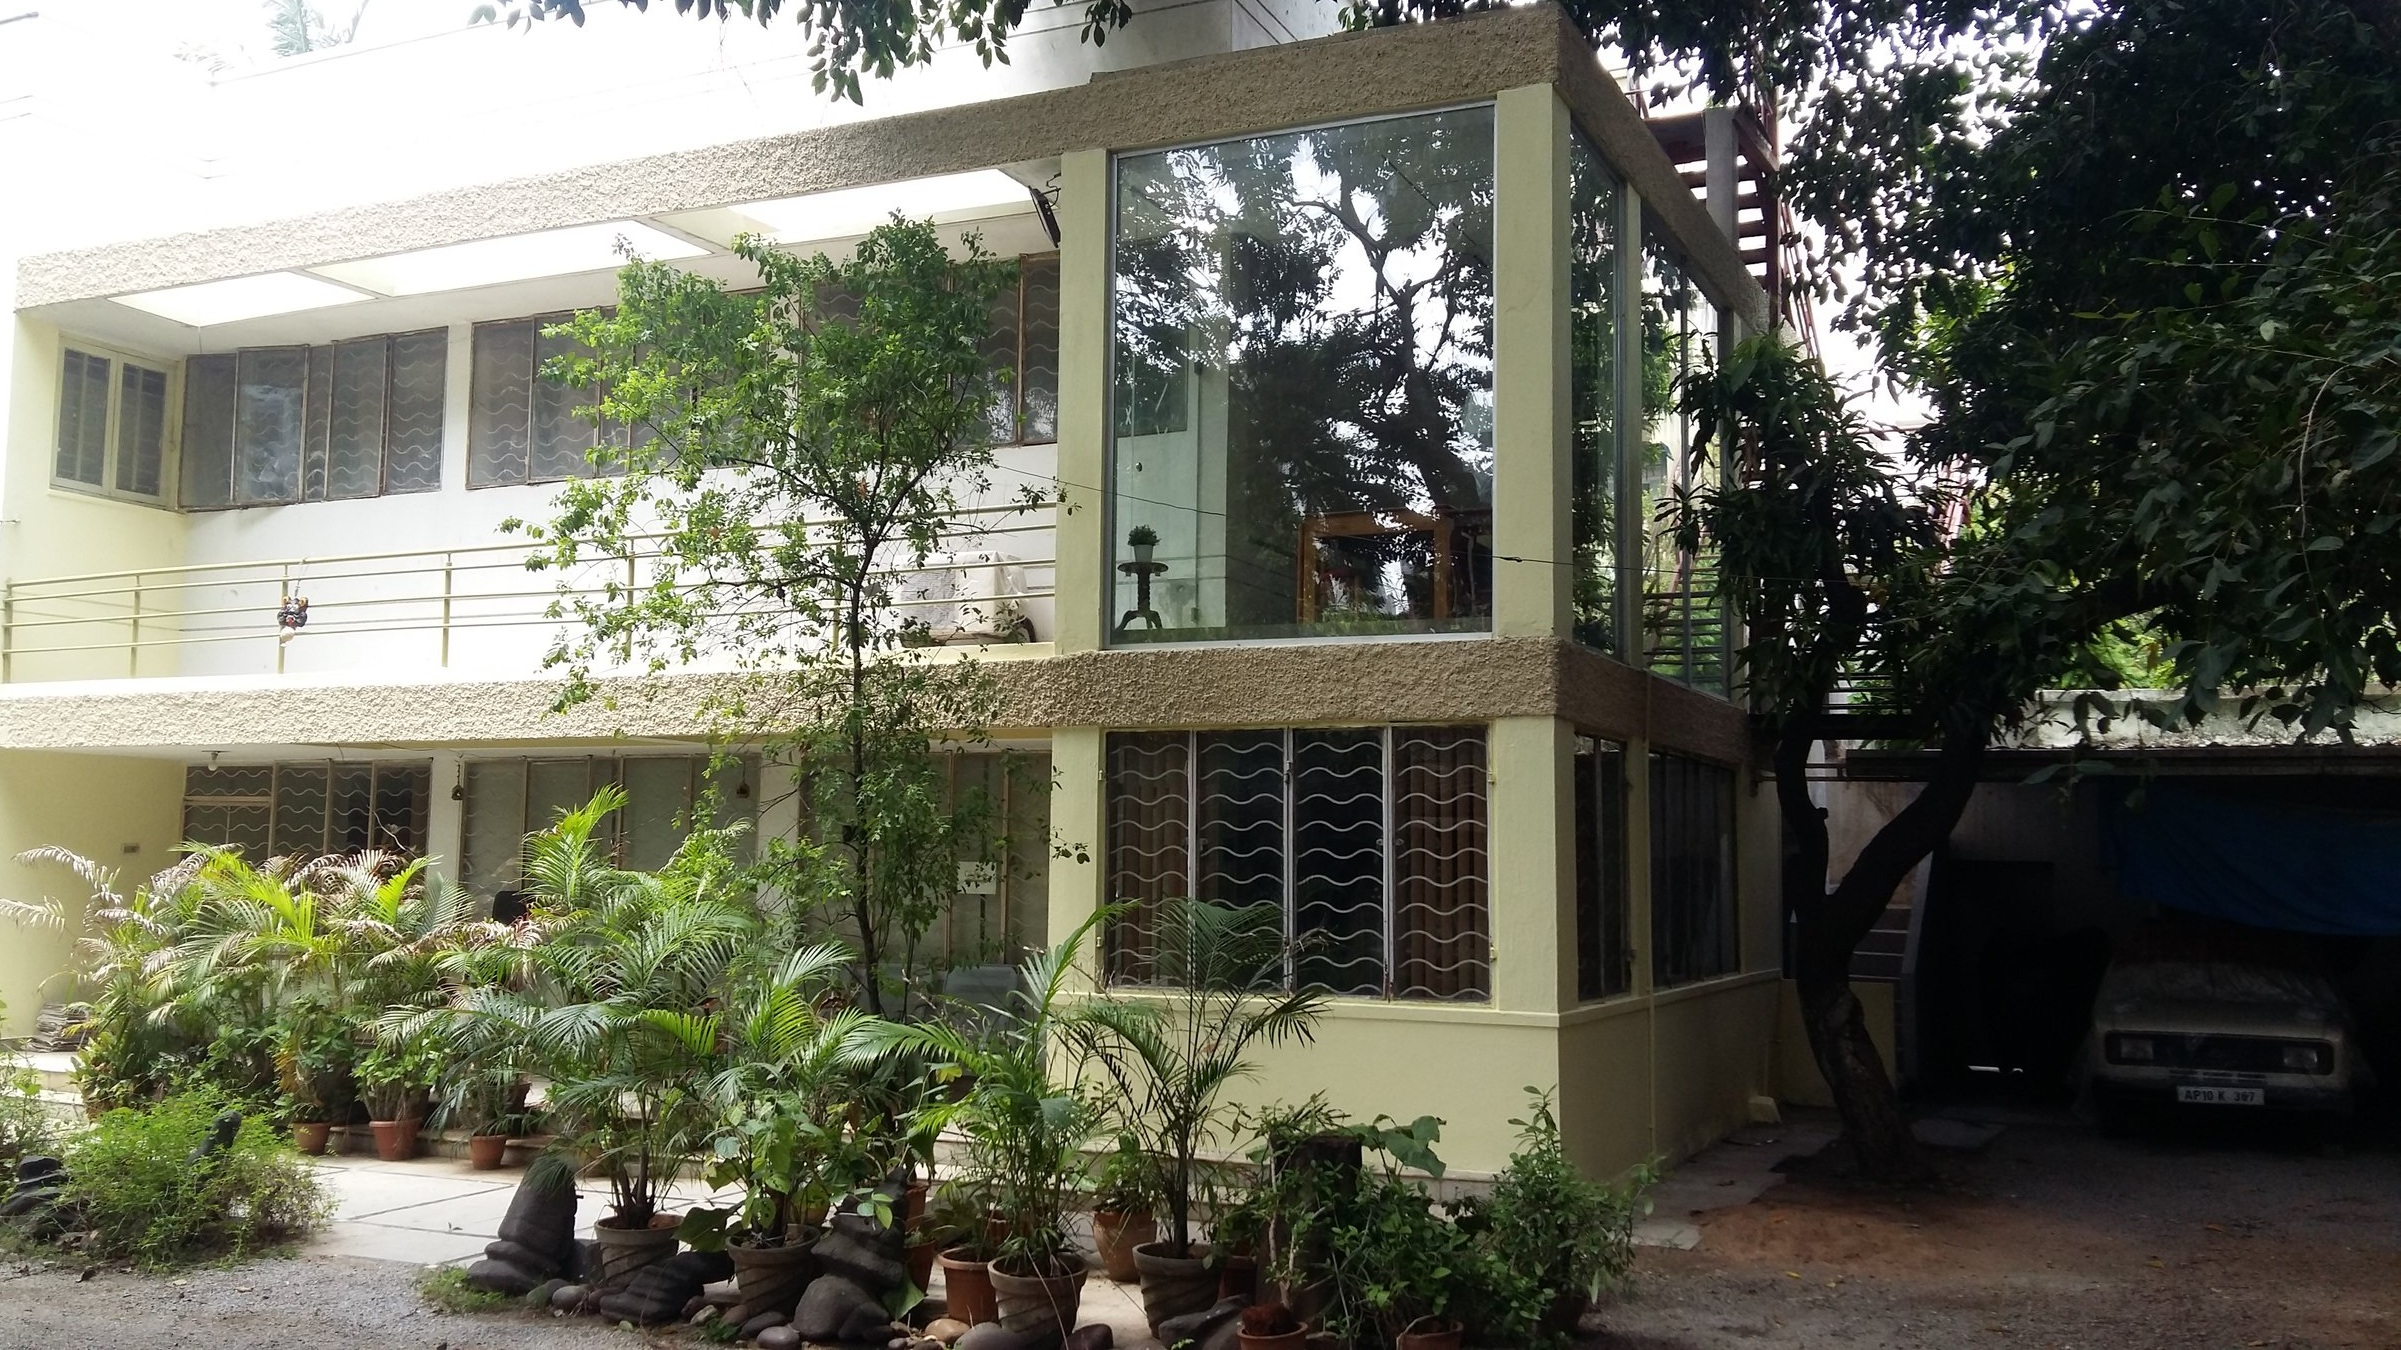 """The office at Magal Associates was established in the 1930's, although the firm itself was established in 1925. The office building is endowed with an excellent natural habitat, including Coconut, Mango and other fruits bearing trees in the Orchard On-site. The premise is affectionately called the """"Best Farm-House"""" in the center of Hyderabad city by some of our clients. The habitat here attracts various migratory birds (such as Eurasian Oriole) from as far as Eurasian regions. This is one of the few places for an office where one can tell time of the day by the type of bird song. Early morning one can hear the Cuckoos, Parrots and the Bulbuls. At the noon one can hear Mynas and the Eurasian Oriole. Past 5 p.m one may hear a variety of Fly catchers and other small birds ethnic to the region returning to their homes. An occasional visitor is the endangered Indian Pittah.    The philosophy of design here rests on """"Excellence by design"""", based on integrity, value - engineering and safety.    Architecture here is the responsibility of designing the built environment taking into consideration the Health, Safety and well being of the end users. The design must have a sense of style that transcends style and hopefully not out of place even in different cultural contexts. Ultimately the culture of the society may be judged by the architecture it produces and it shows how well the architects within it design the built environment. The building itself has been a Green building since 1930's. The entire office interior does not need artificial lighting during the day and more than 50% of storm water run-off from the site and the building rooftop is harvested for gardening. Also a significant amount of plant and tree waste is used as compost to sustain the trees and plants on site. Last but certainly not the least the people at Magal Associates are carefully associated with the firm from the best Institutes of India and get trained to work on projects of National and Internationa"""